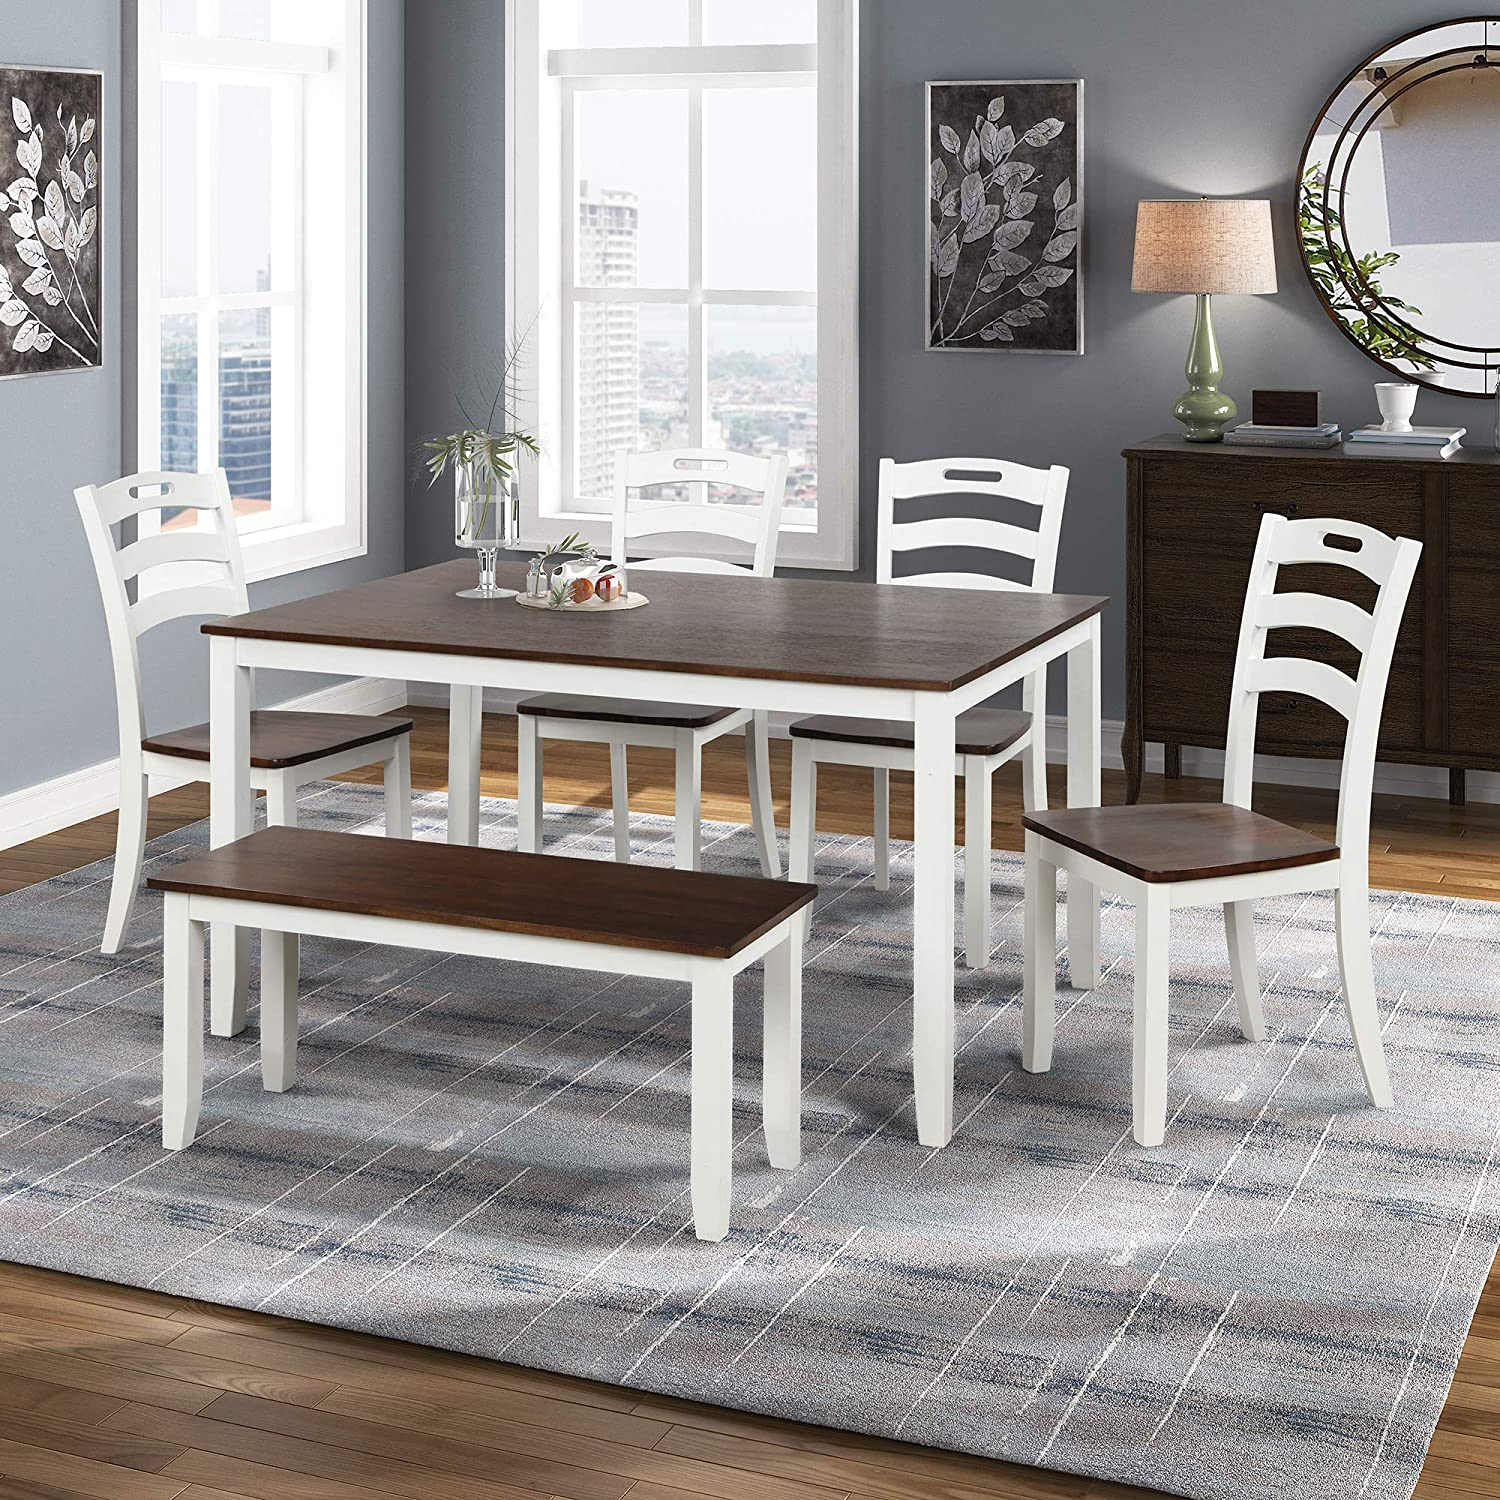 Merax Dining Table Sets 6 Piece, Dining Room Sets For 6